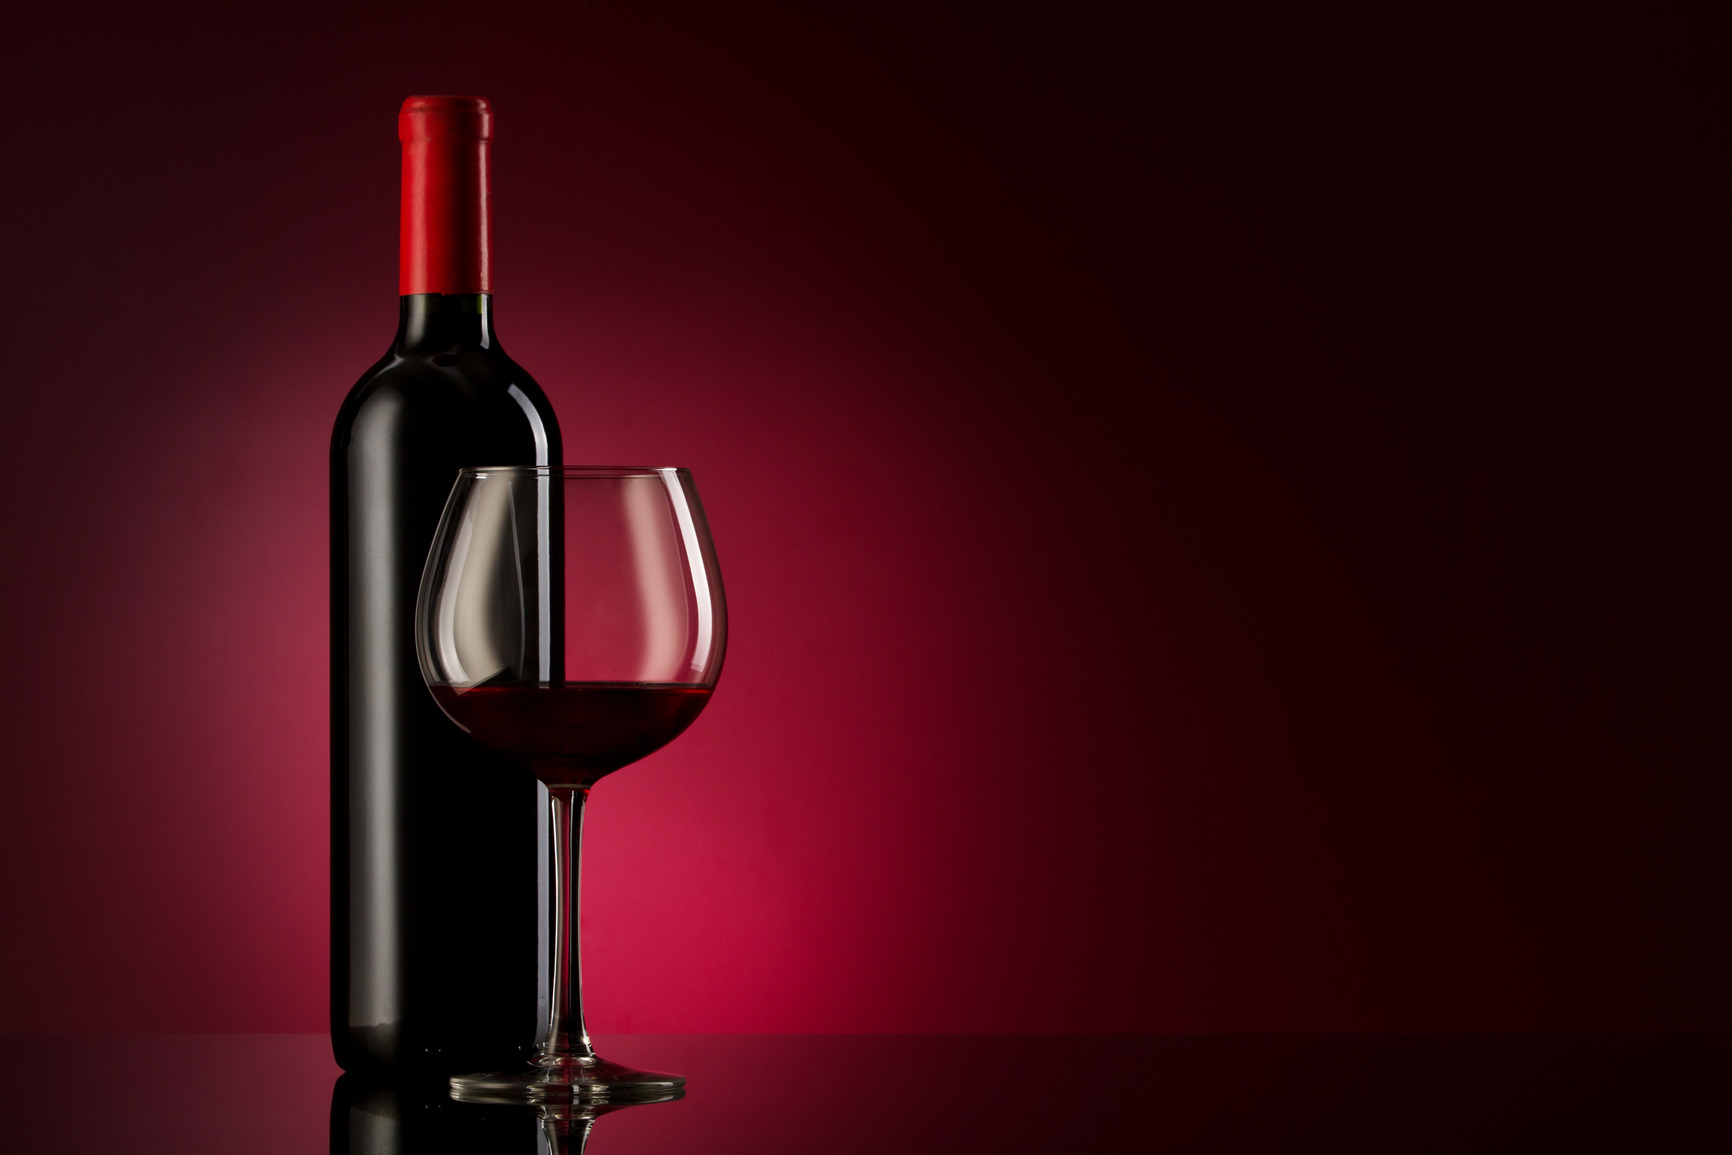 bottle with red wine and glass on a red gradient bottle red wine